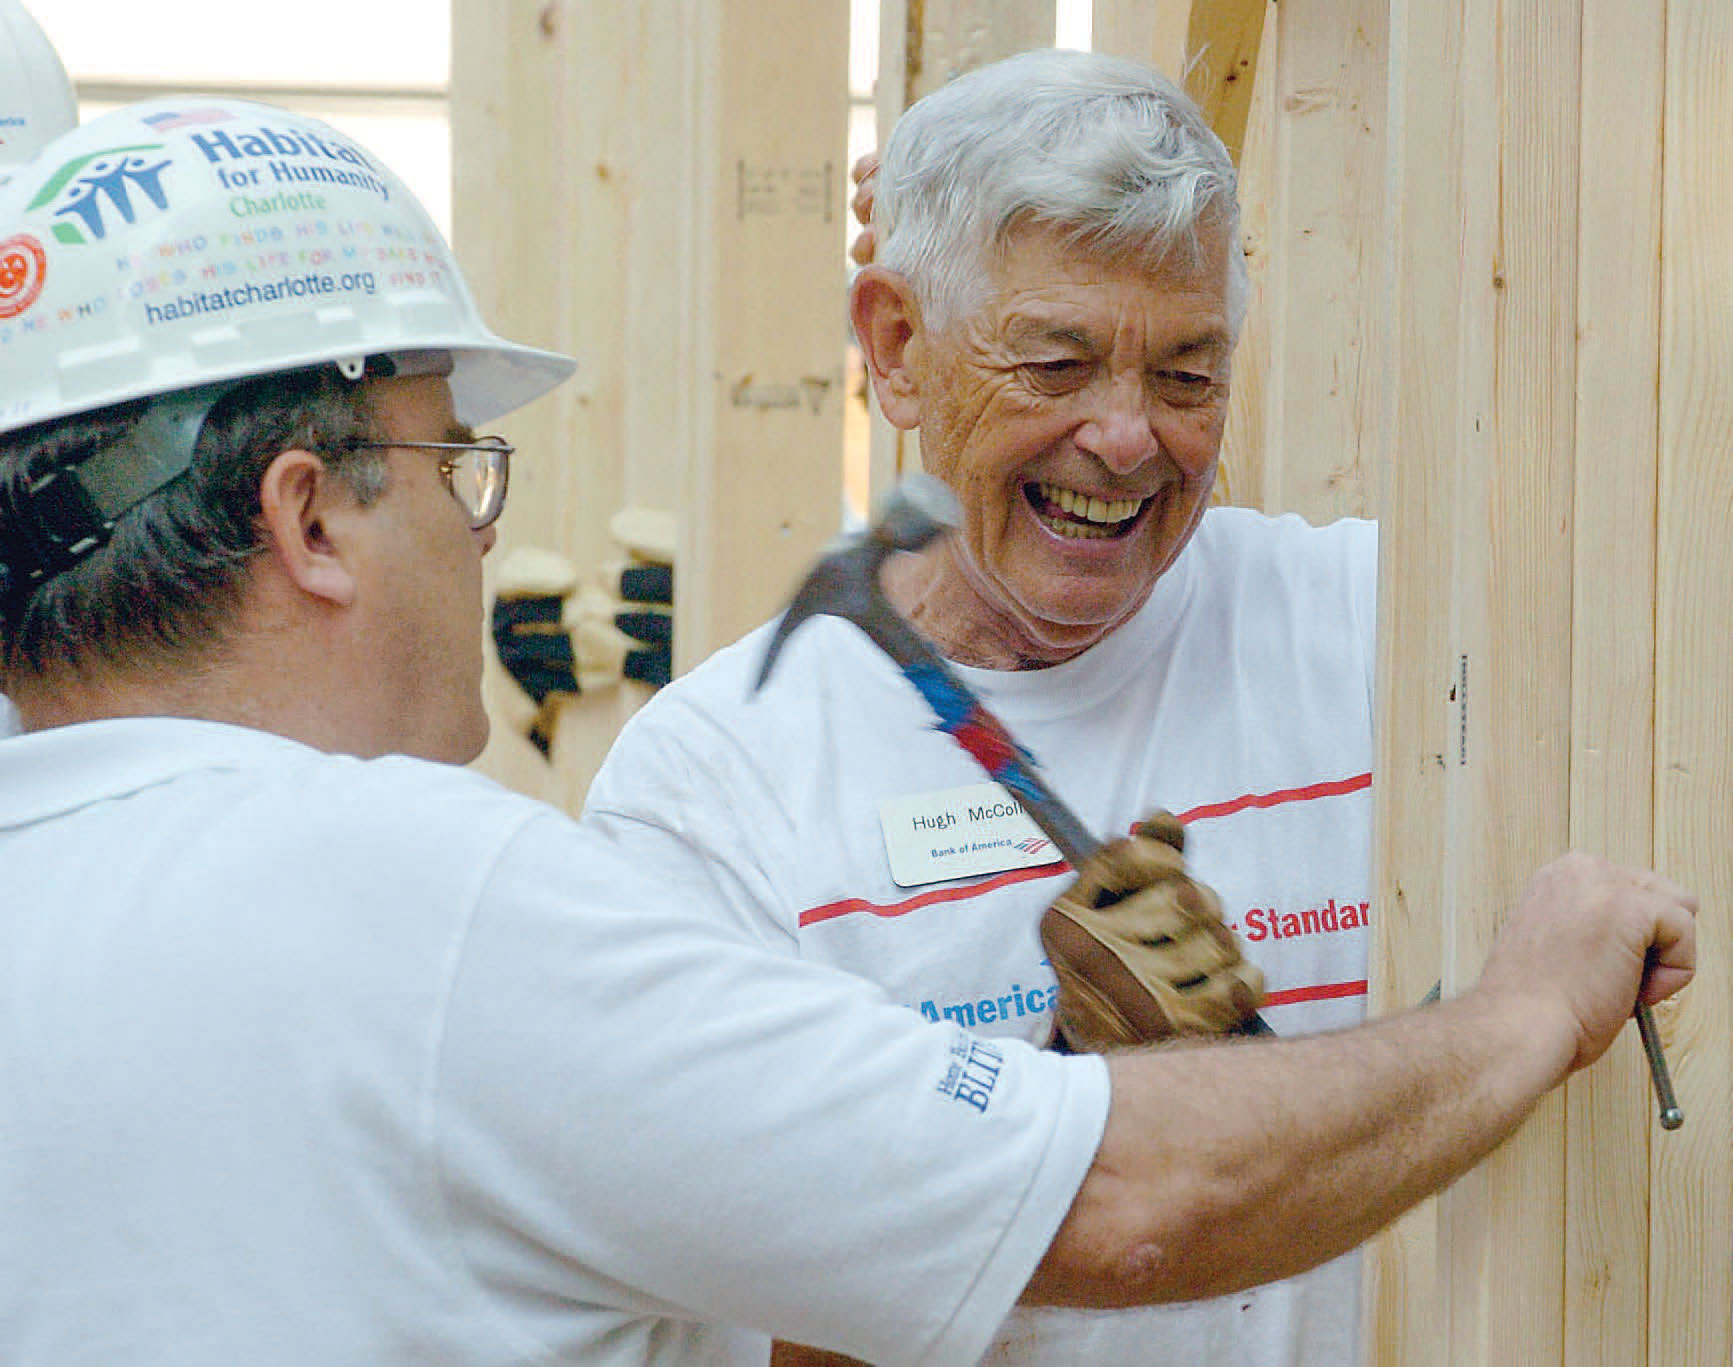 Hugh McColl standing with another man, the Habitat for Humanity Executive Director, hammering a nail into plywood.